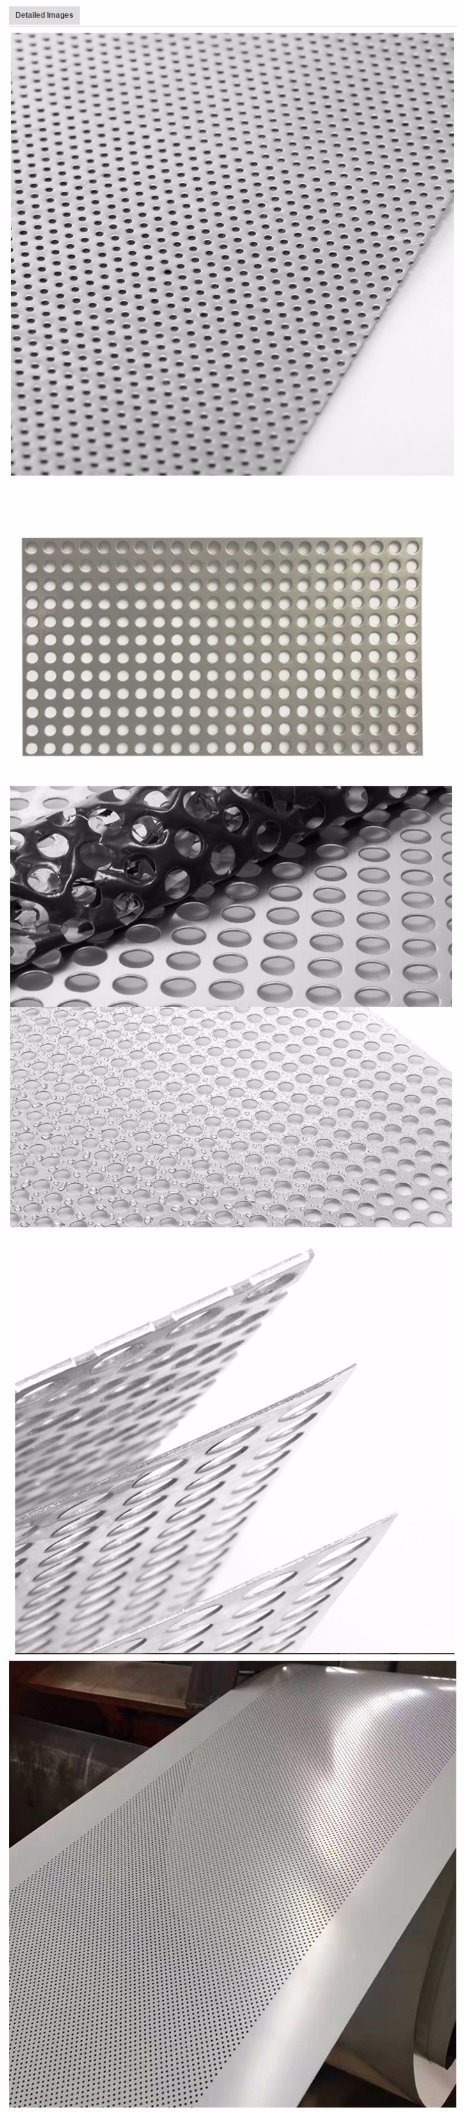 Porous Meal Plate 0.2mm Round Hole Perforated Metal Sheet